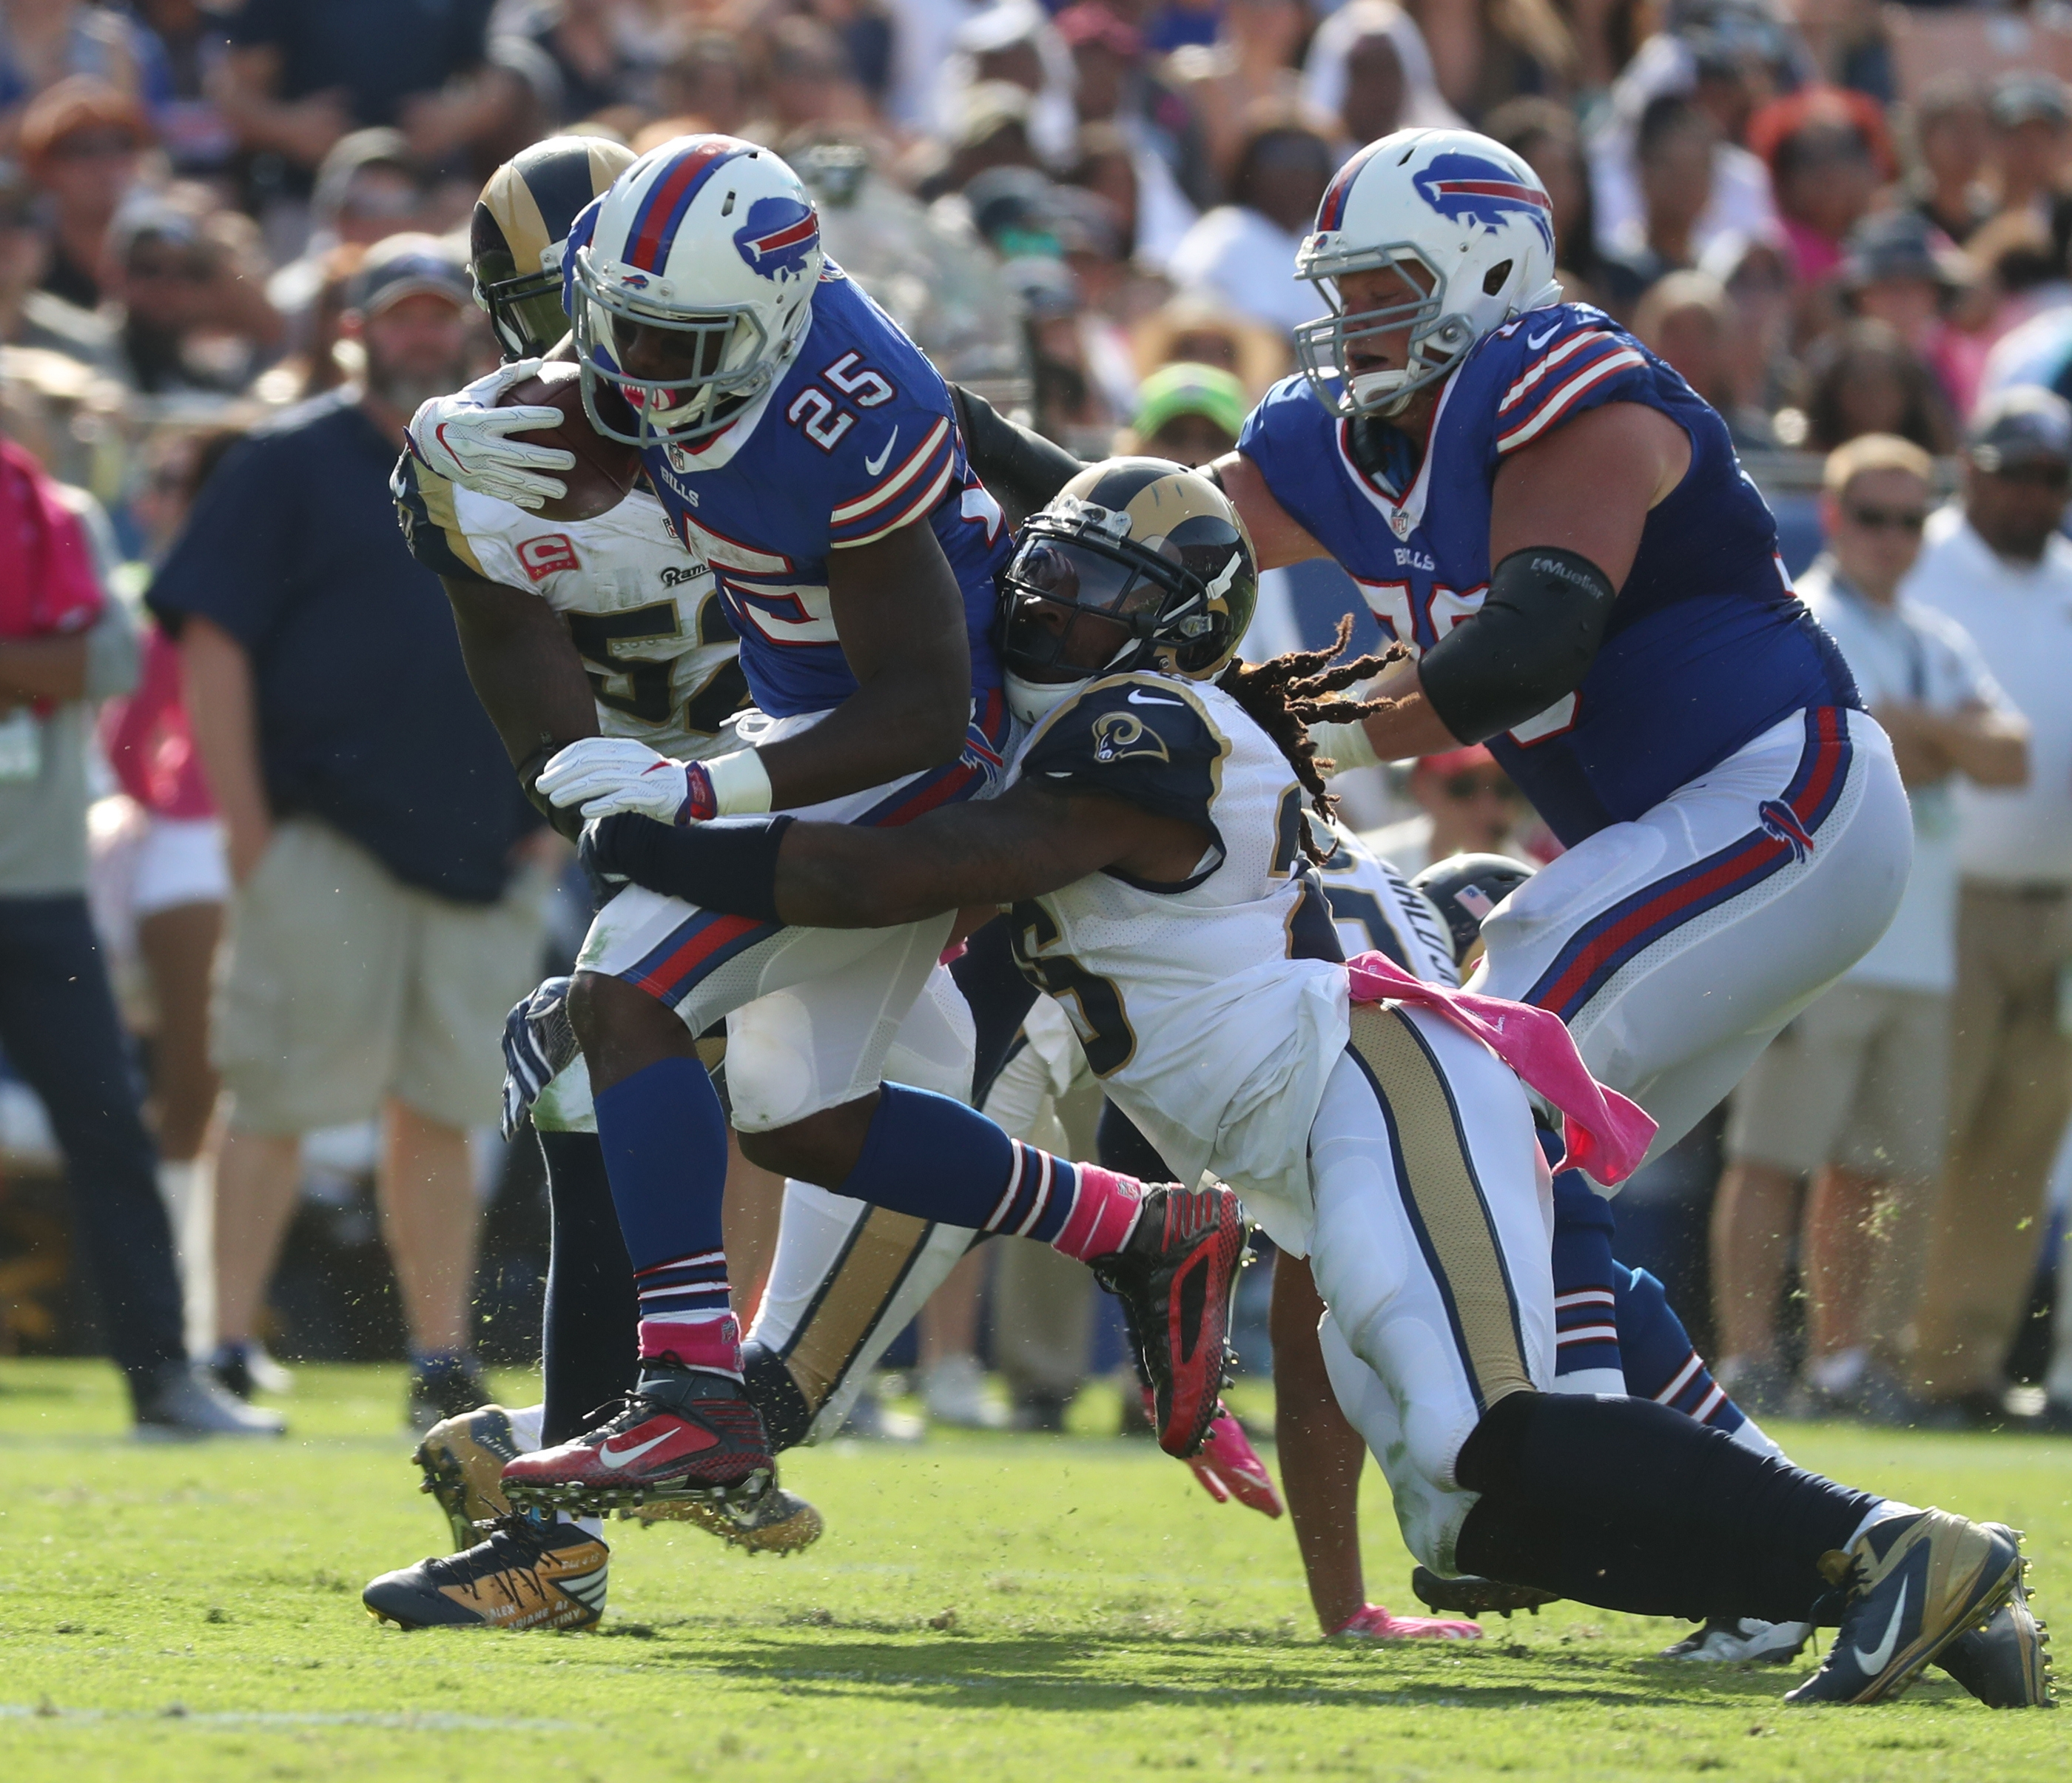 Buffalo Bills running back LeSean McCoy (25) complete pass in the third quarter at Los Angeles Memorial Coliseum on Sunday, Oct. 9, 2016.  (James P. McCoy/ Buffalo News)